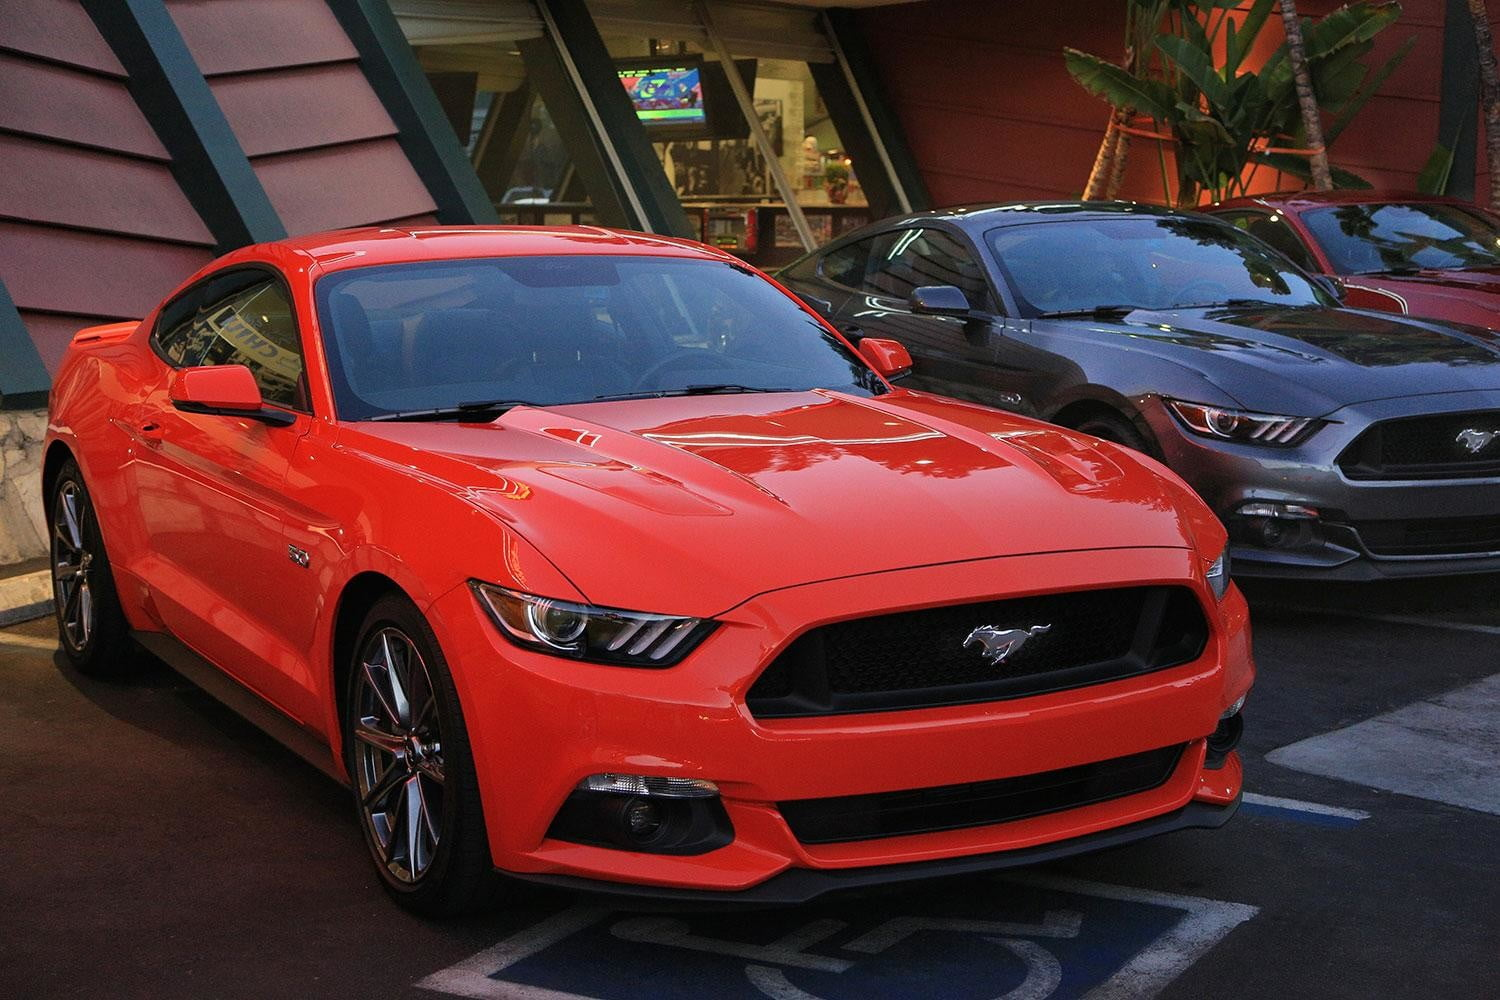 2015 Ford Mustang line up